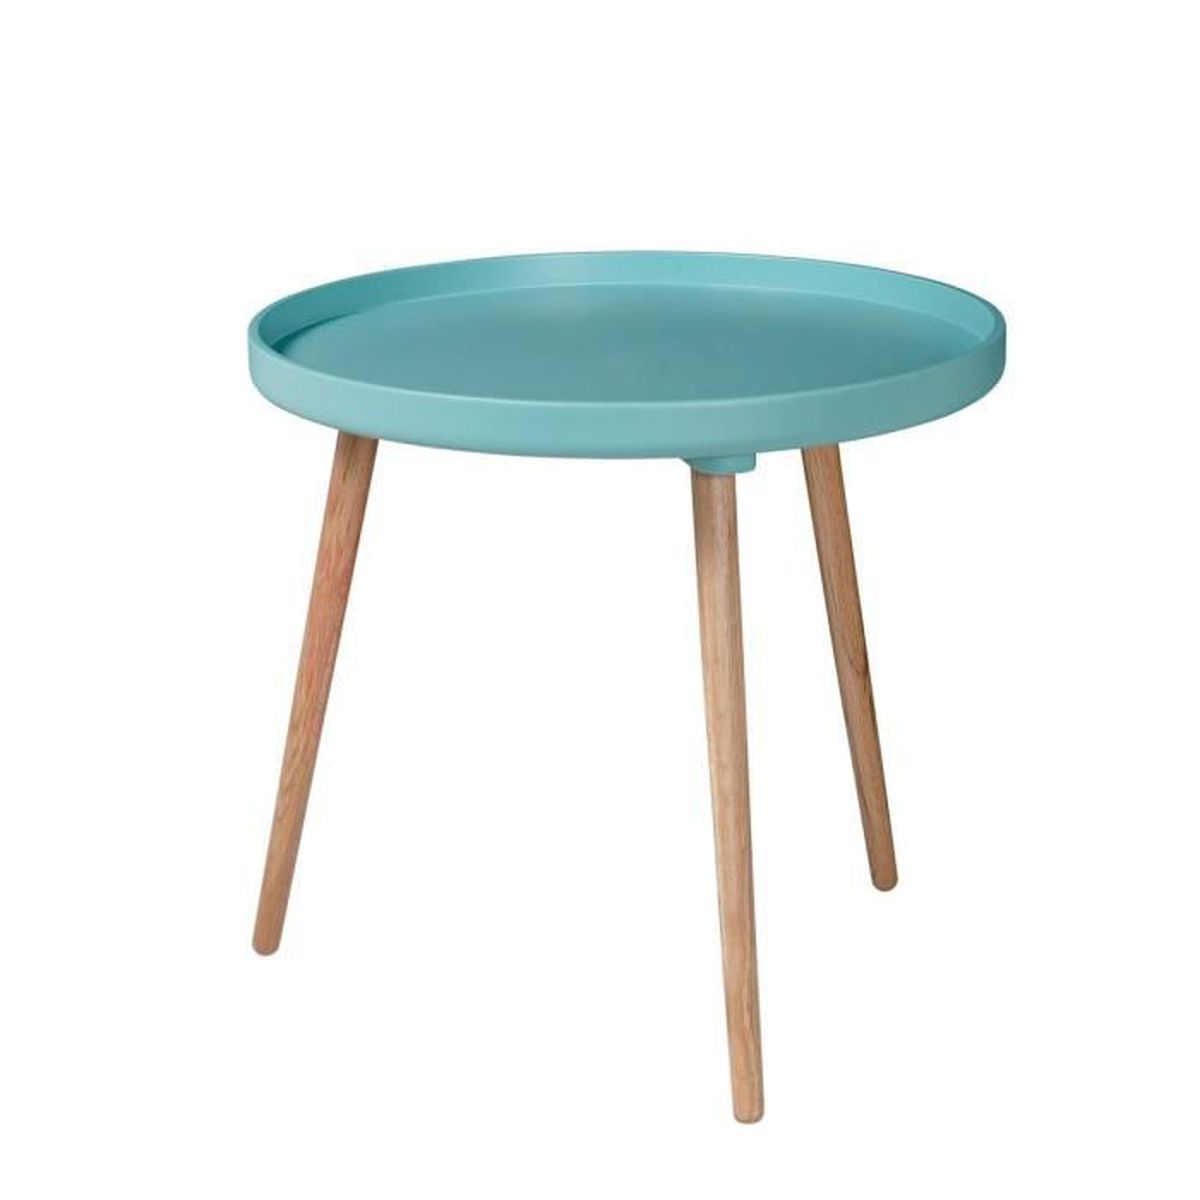 Table basse ronde 55 x h55cm kompass couleur turquoise for 2 table basse ronde